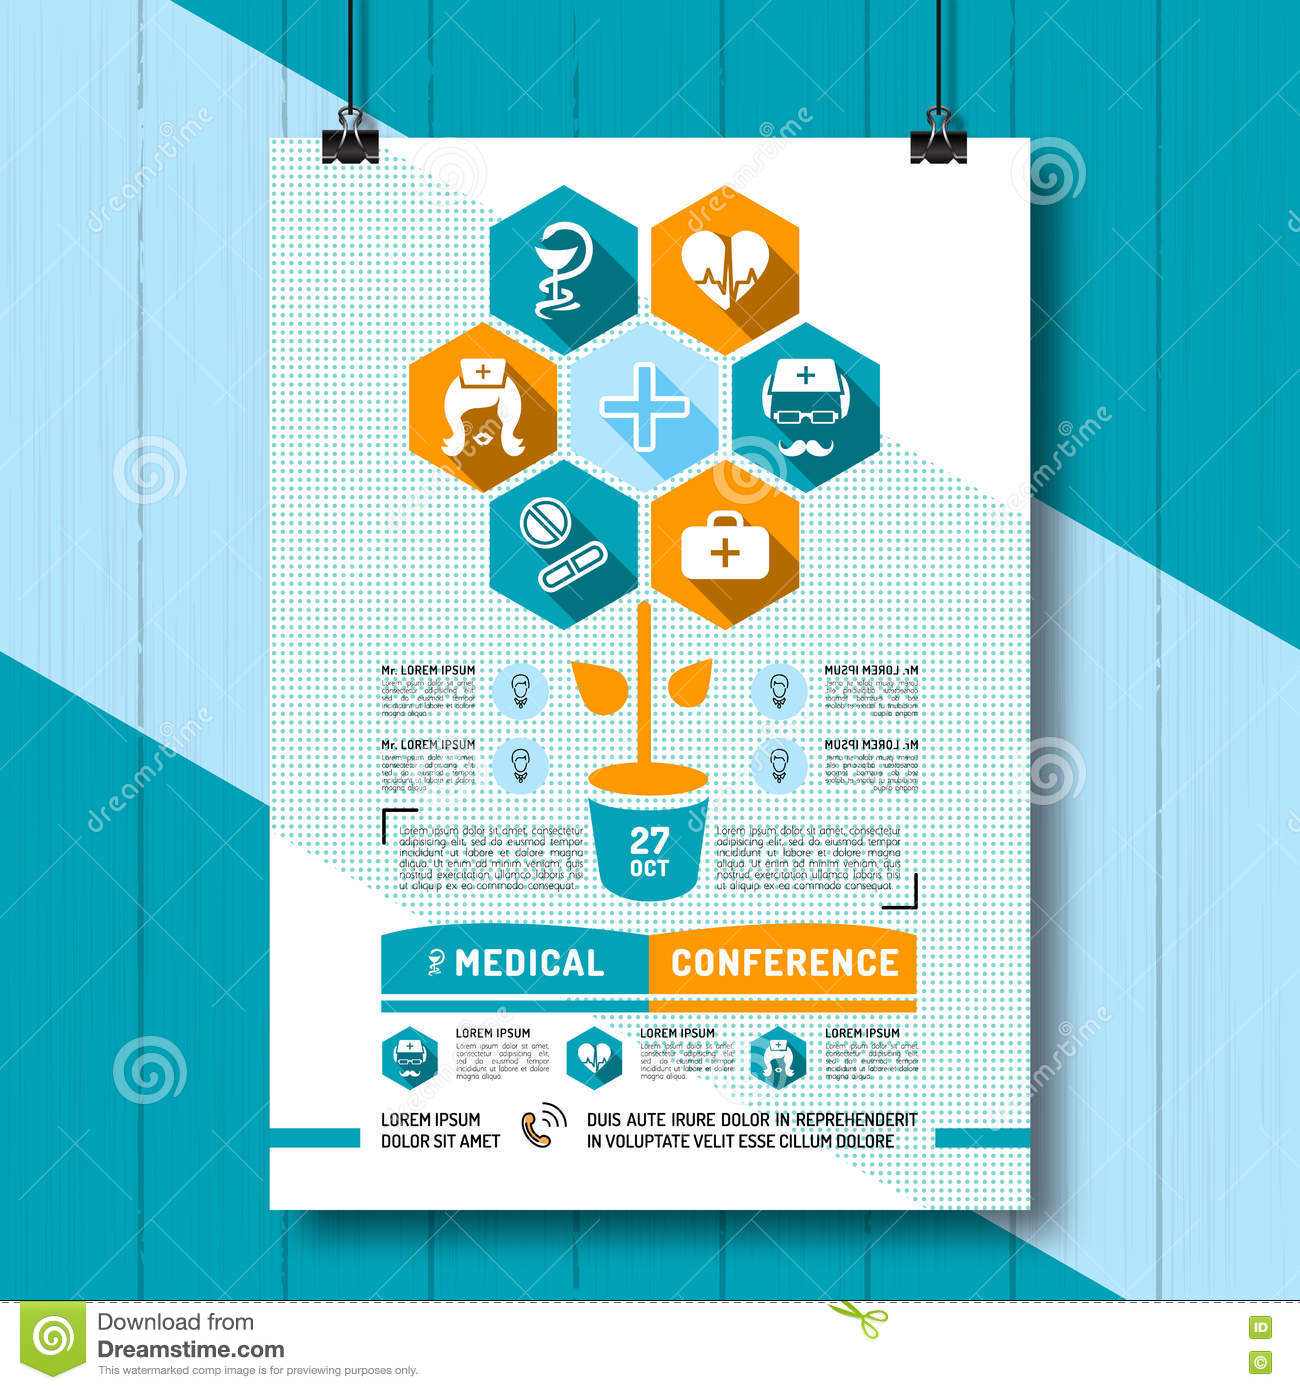 Poster design medical - Vector Medical Conference Poster Flat Infographics Icons Medicine And Health Stock Vector